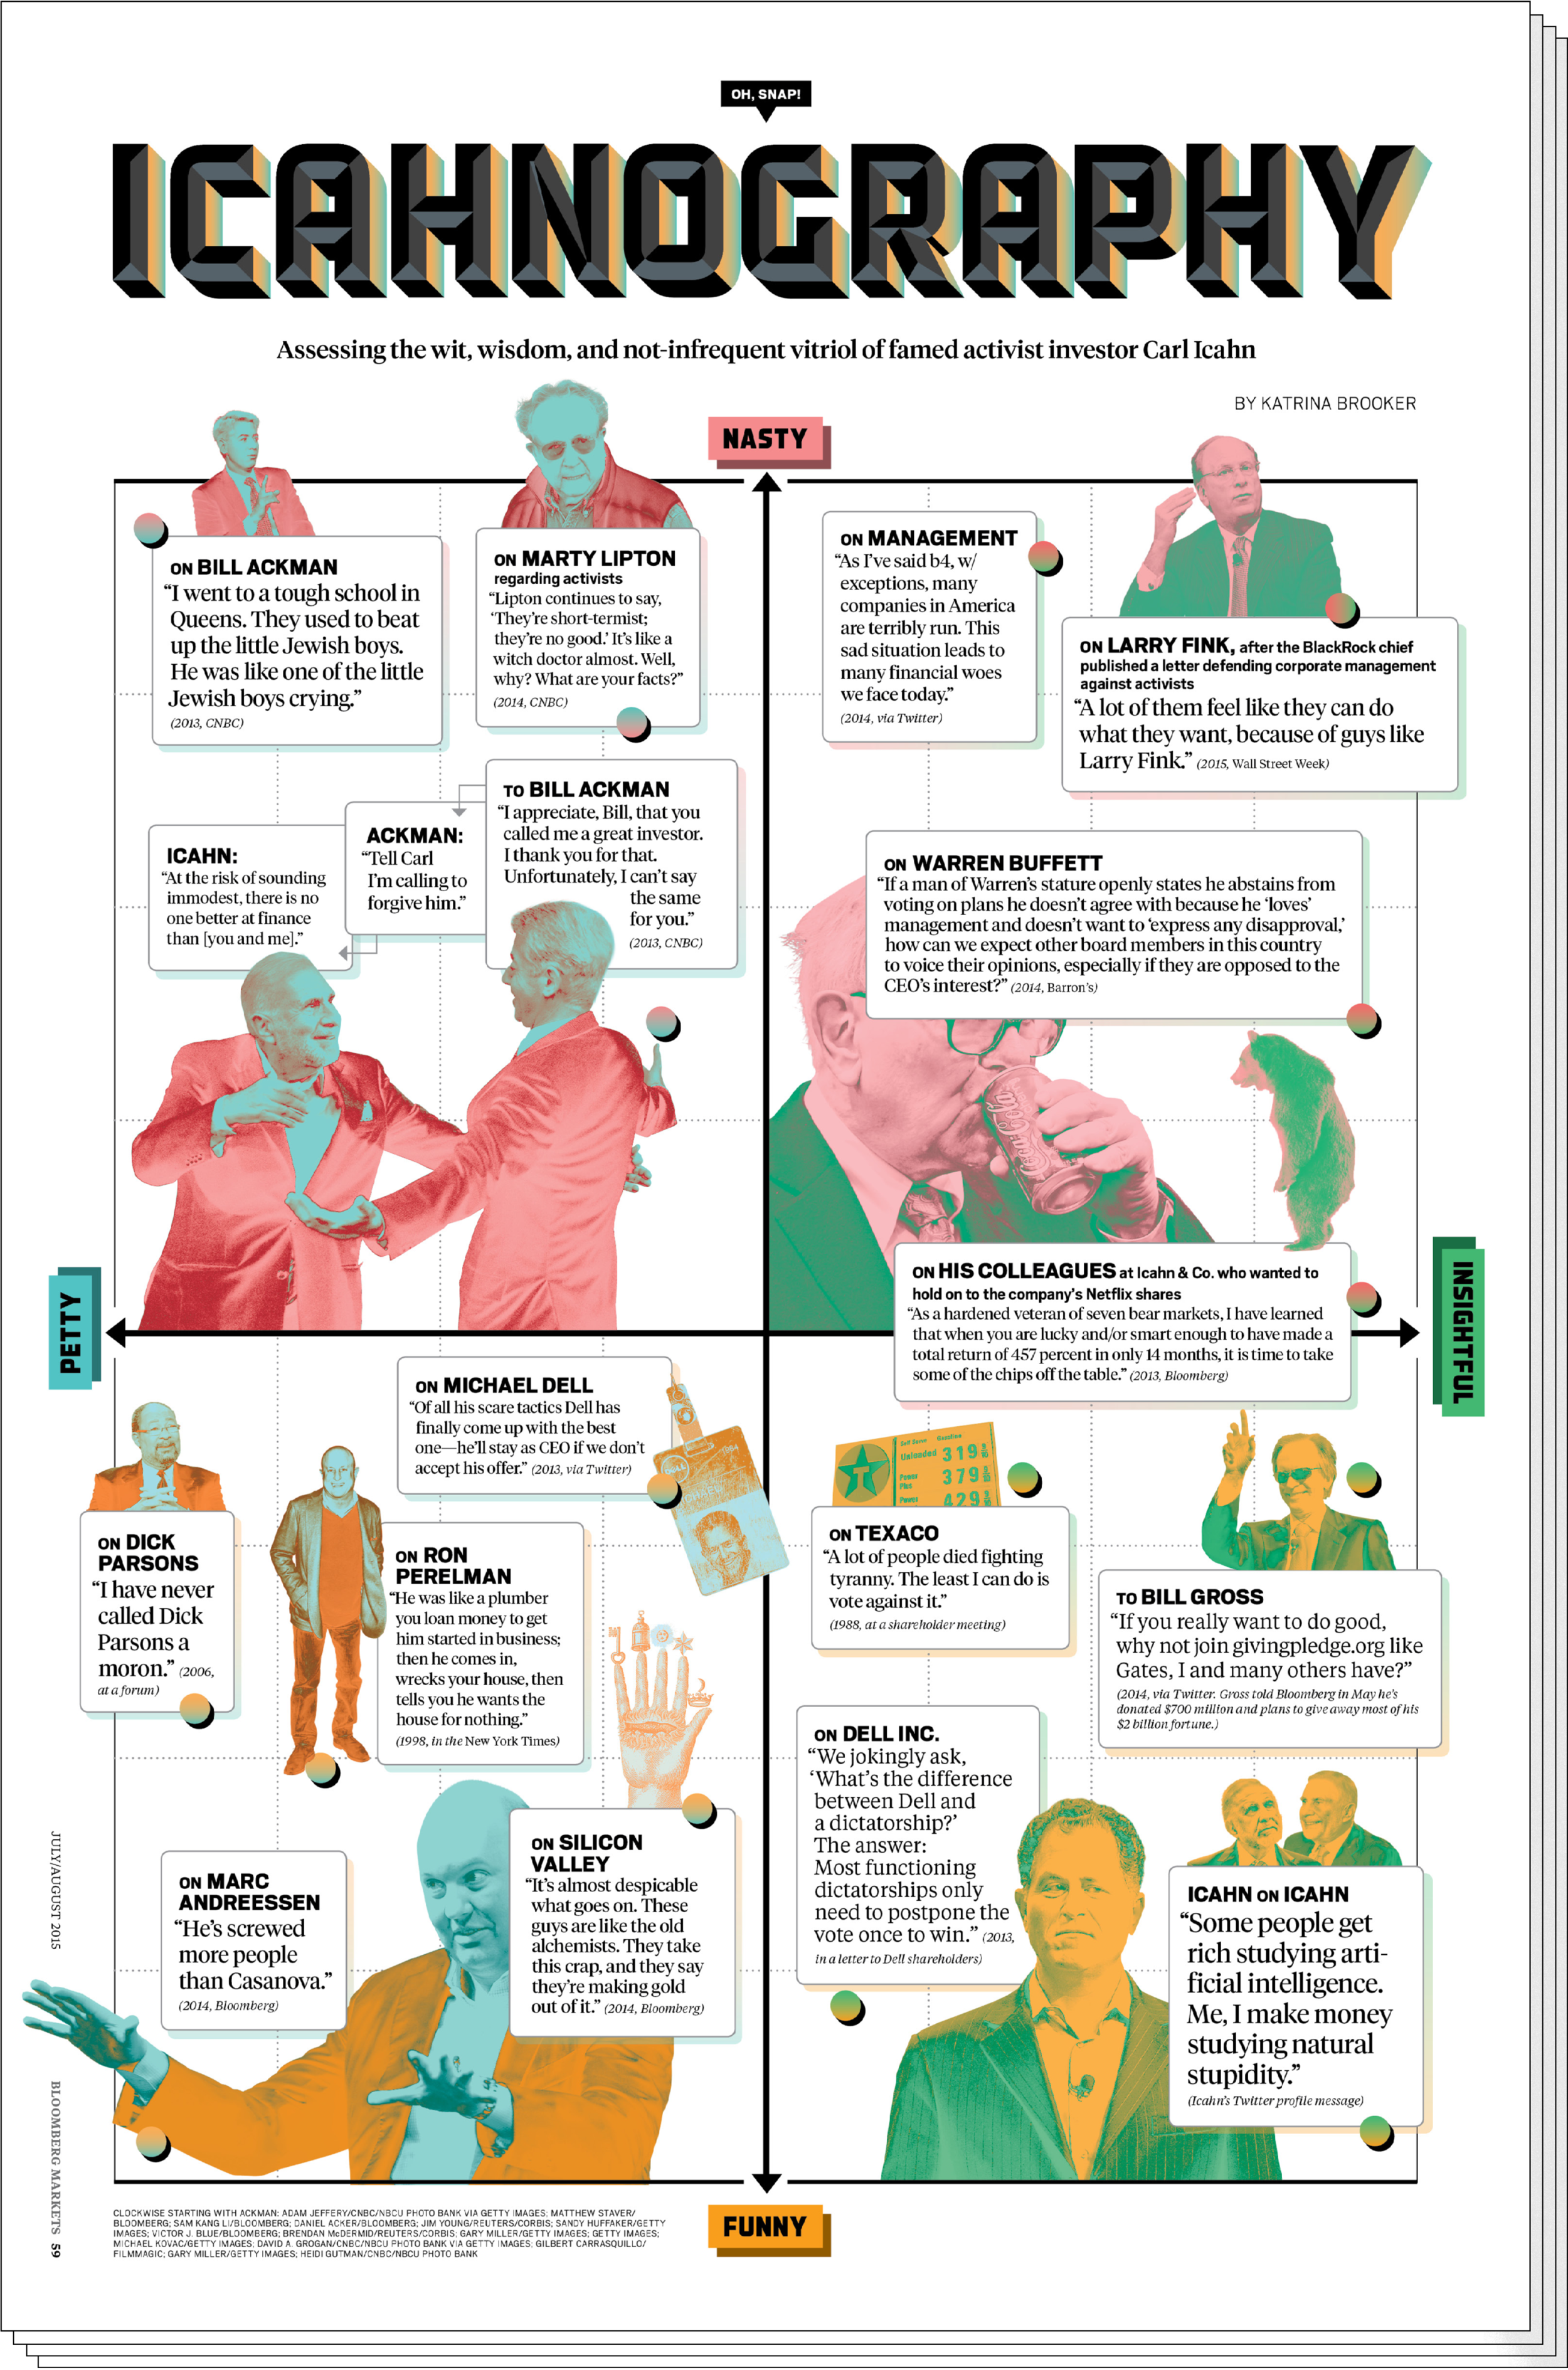 Lily Chow (Bloomberg Market Infographic)